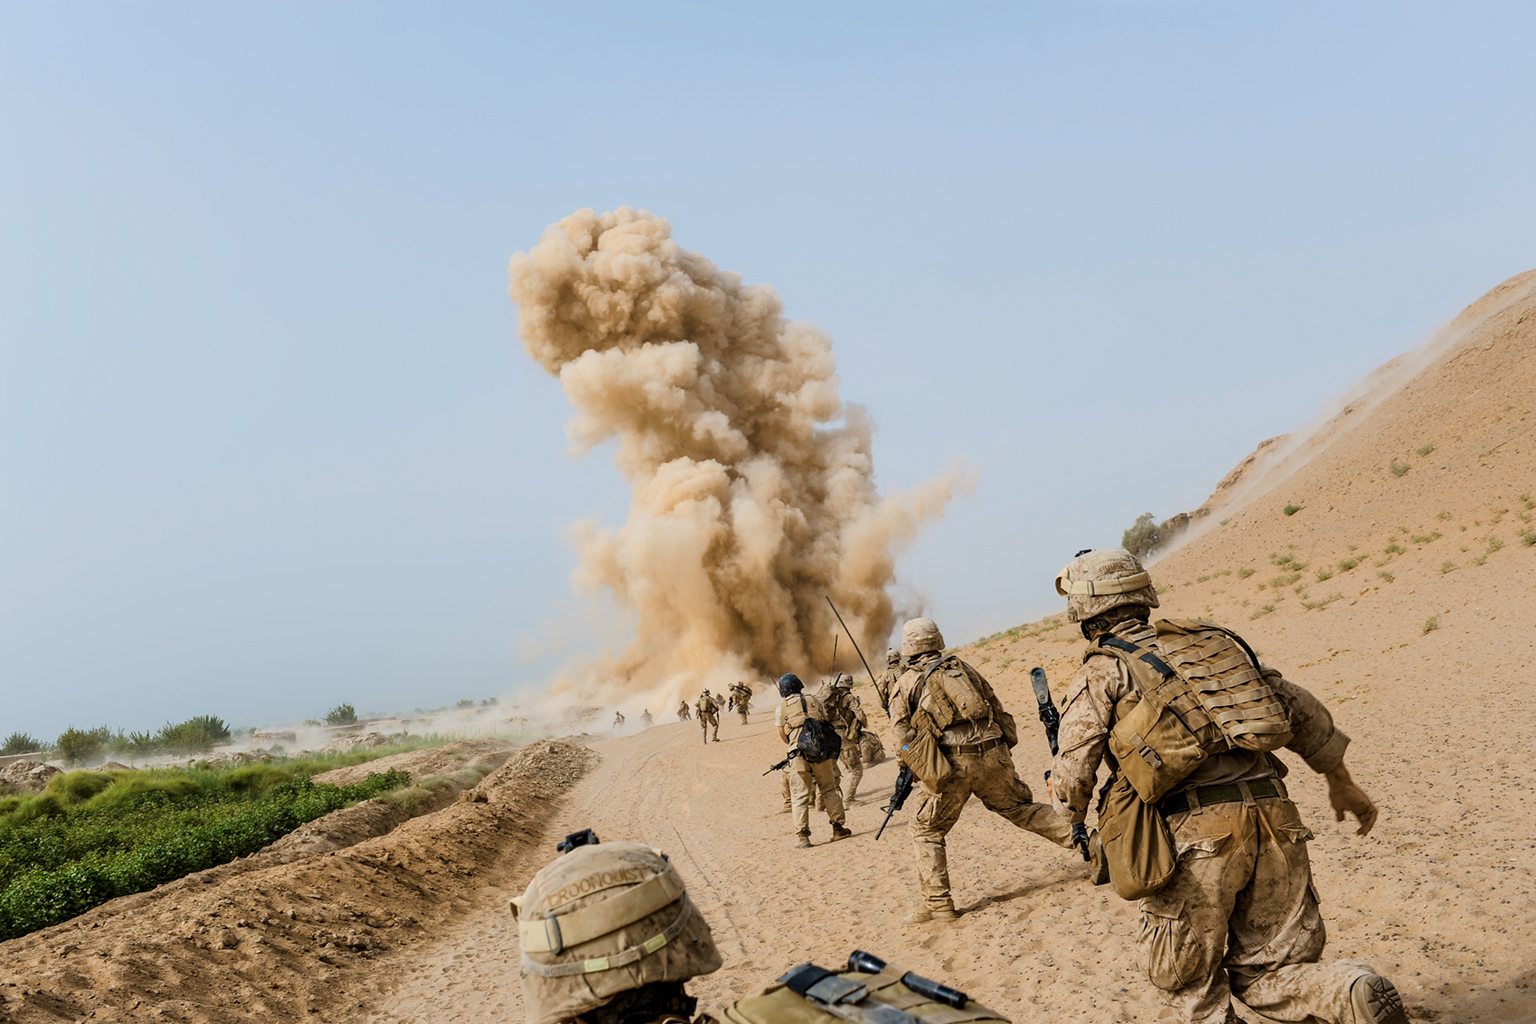 "Marines on patrol in Afghanistan in 2009 noticed a motorcyclist pass by, and moments later an IED exploded. ""It's like being kicked by a horse, a horse with a foot that could cover your entire body,"" said one survivor of an IED attack. Peter van Agtmael 